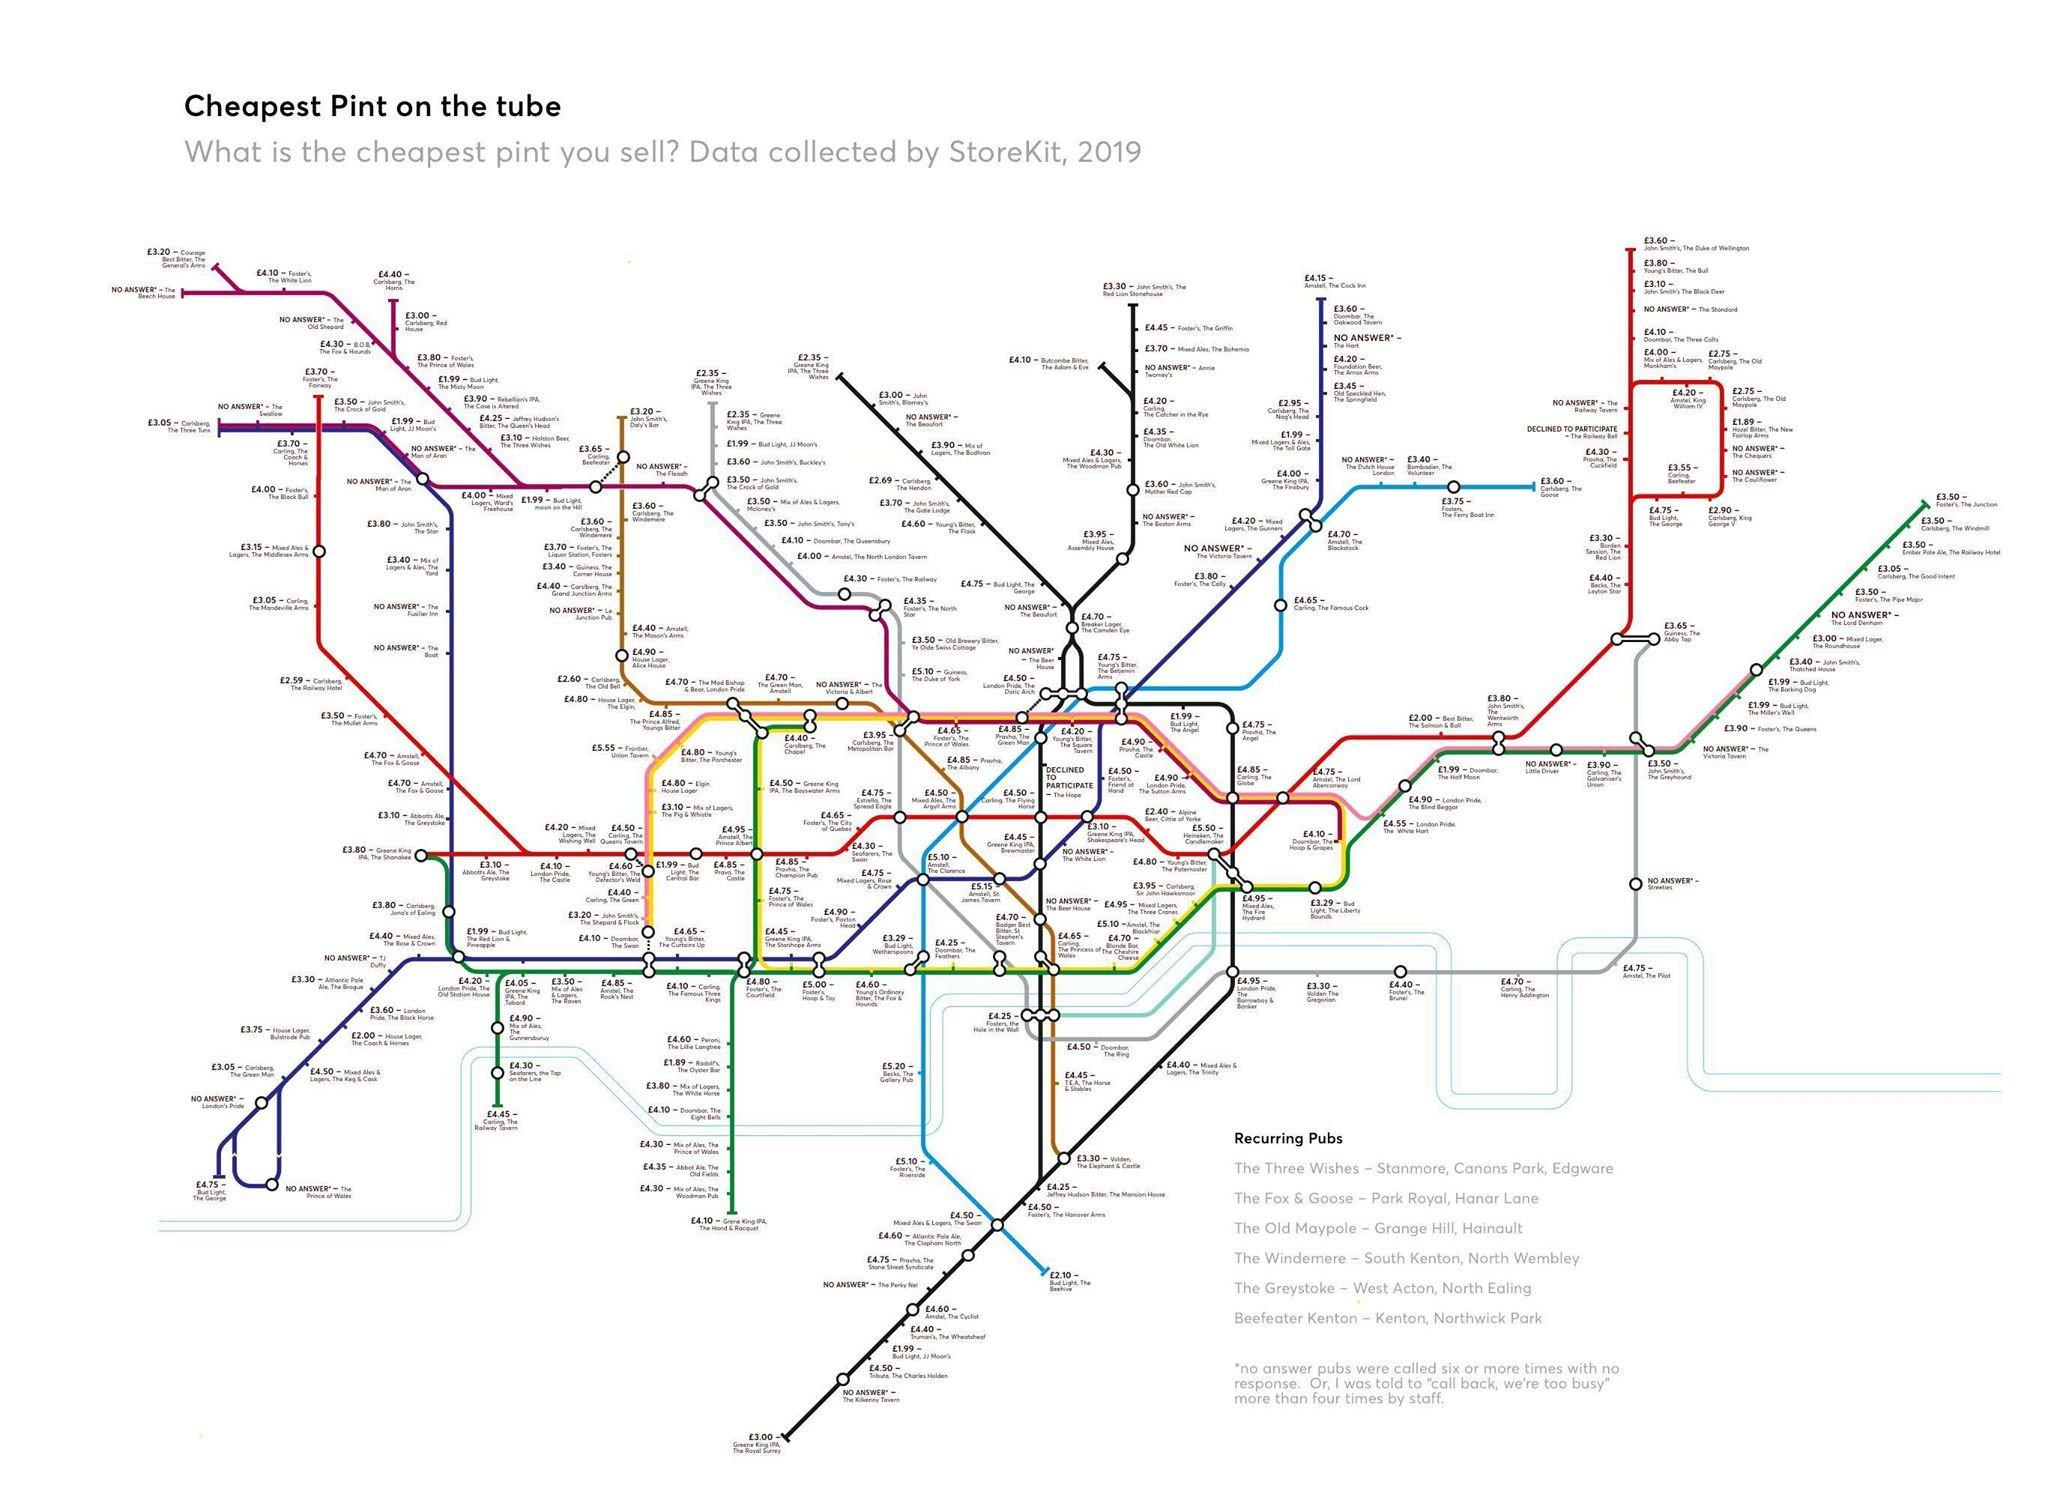 Image may contain: Cheapest pints in London, London, cheap, pints, drinks, pub, tube map, alternative, Wetherspoons, Bakerloo, Central, Circle, District, Hammersmith and City, Jubilee, Metropolitan, Northern, Piccadilly, Victoria, Waterloo and City, lines, underground, North, East, South, West, Central, Plan, Plot, Diagram